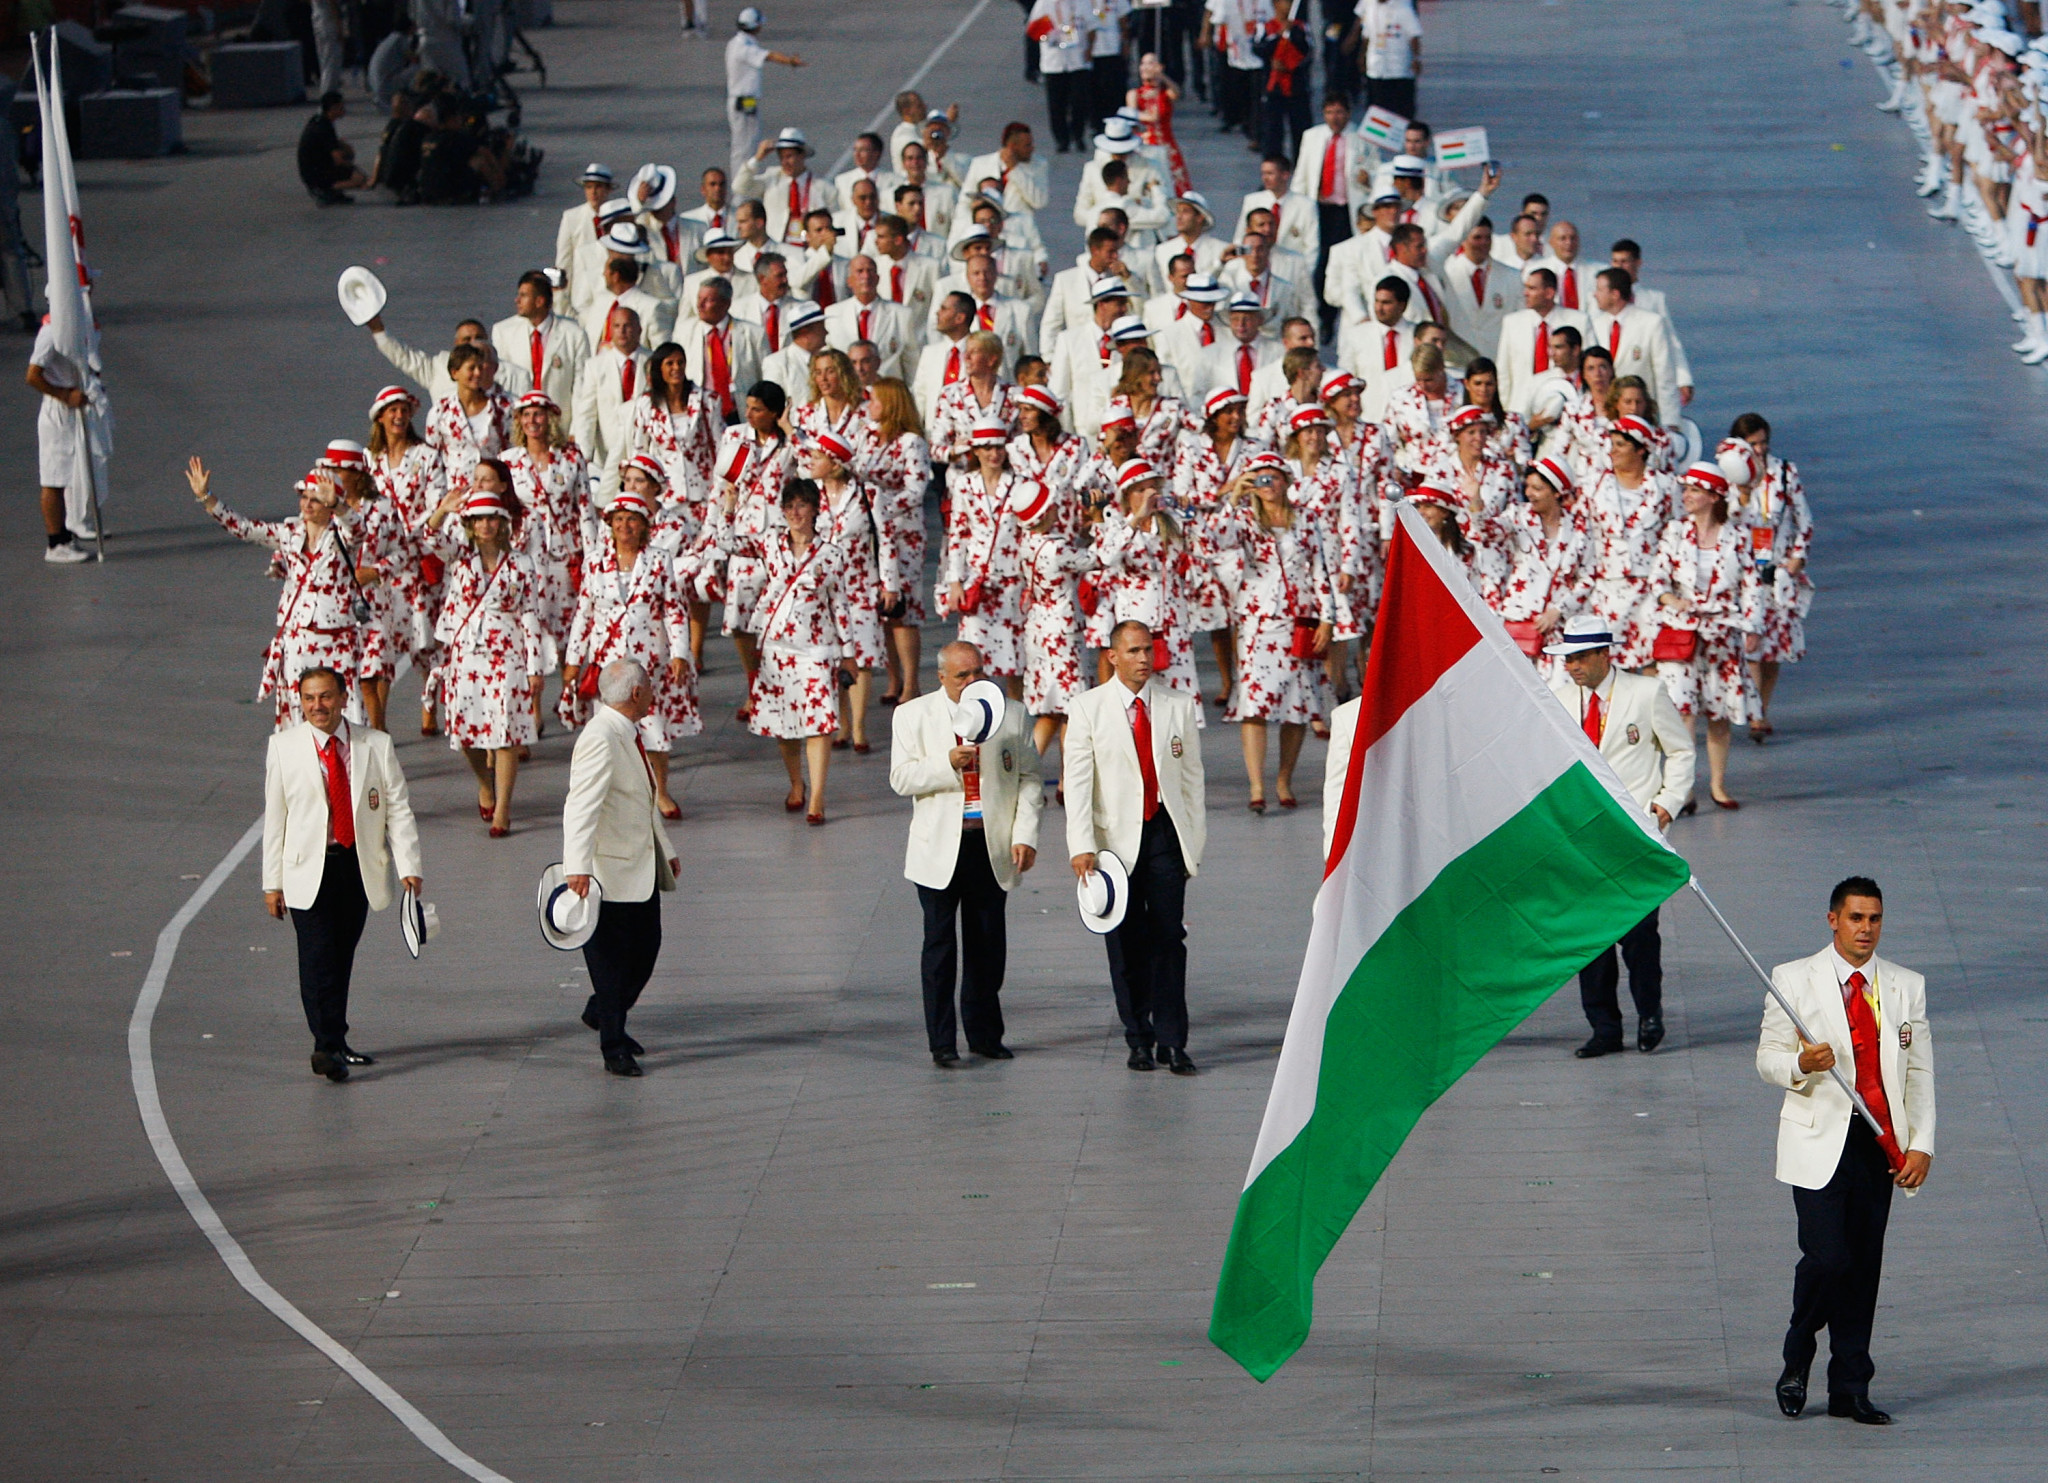 Hungary won two gold medals on the sixth day of the European Championships ©Getty Images